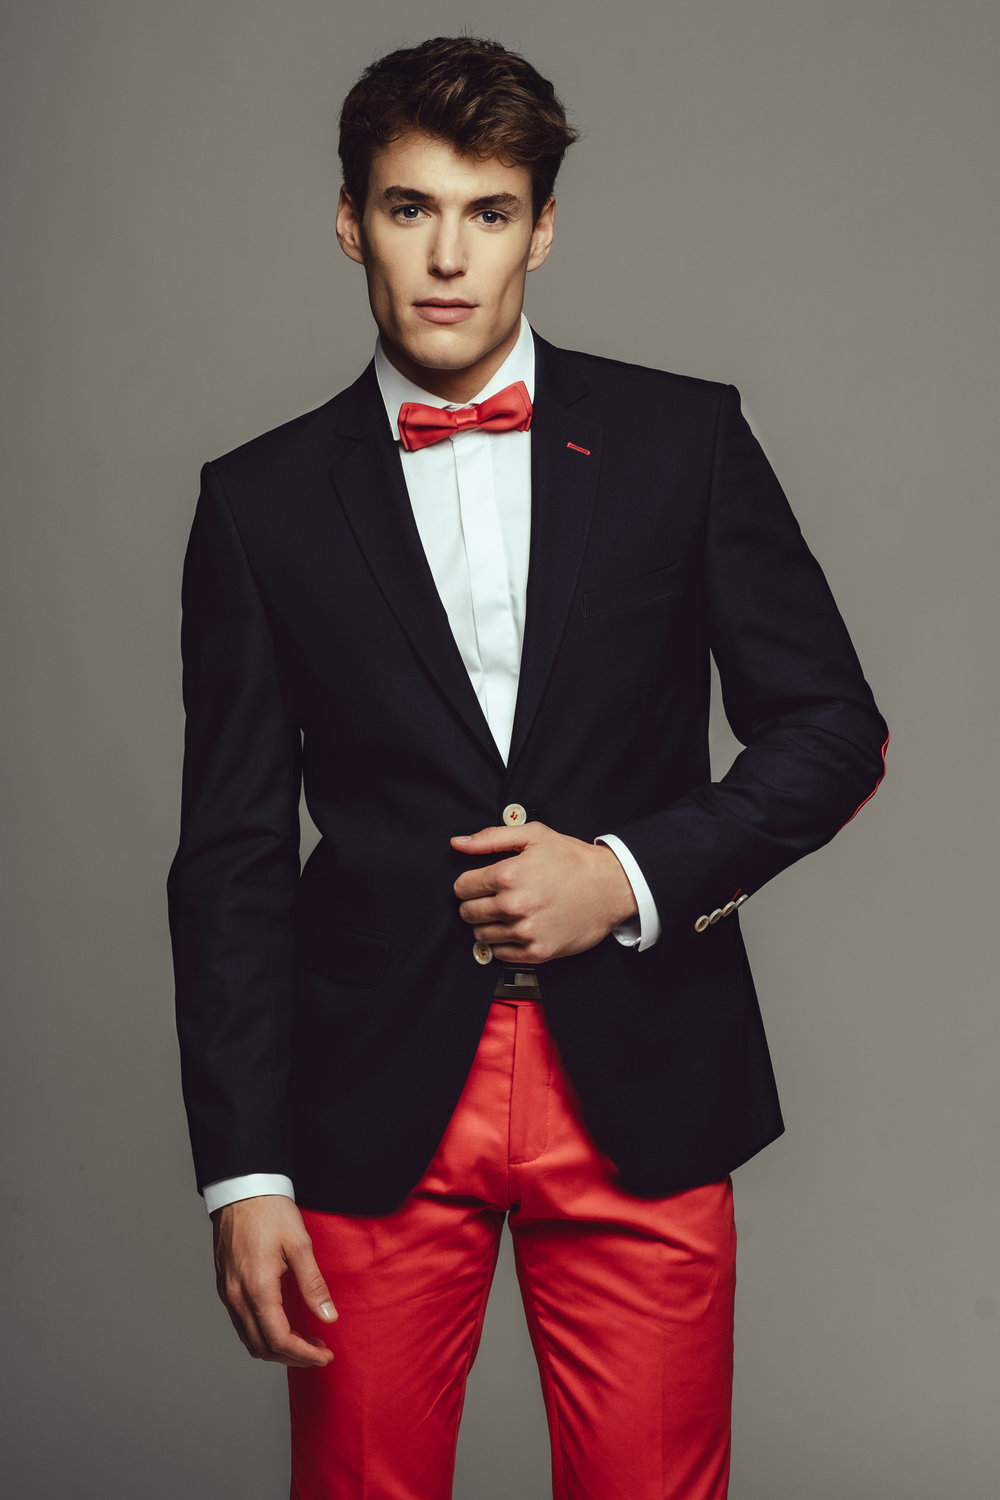 camilliano-2019-red-suit-01-HD.jpg